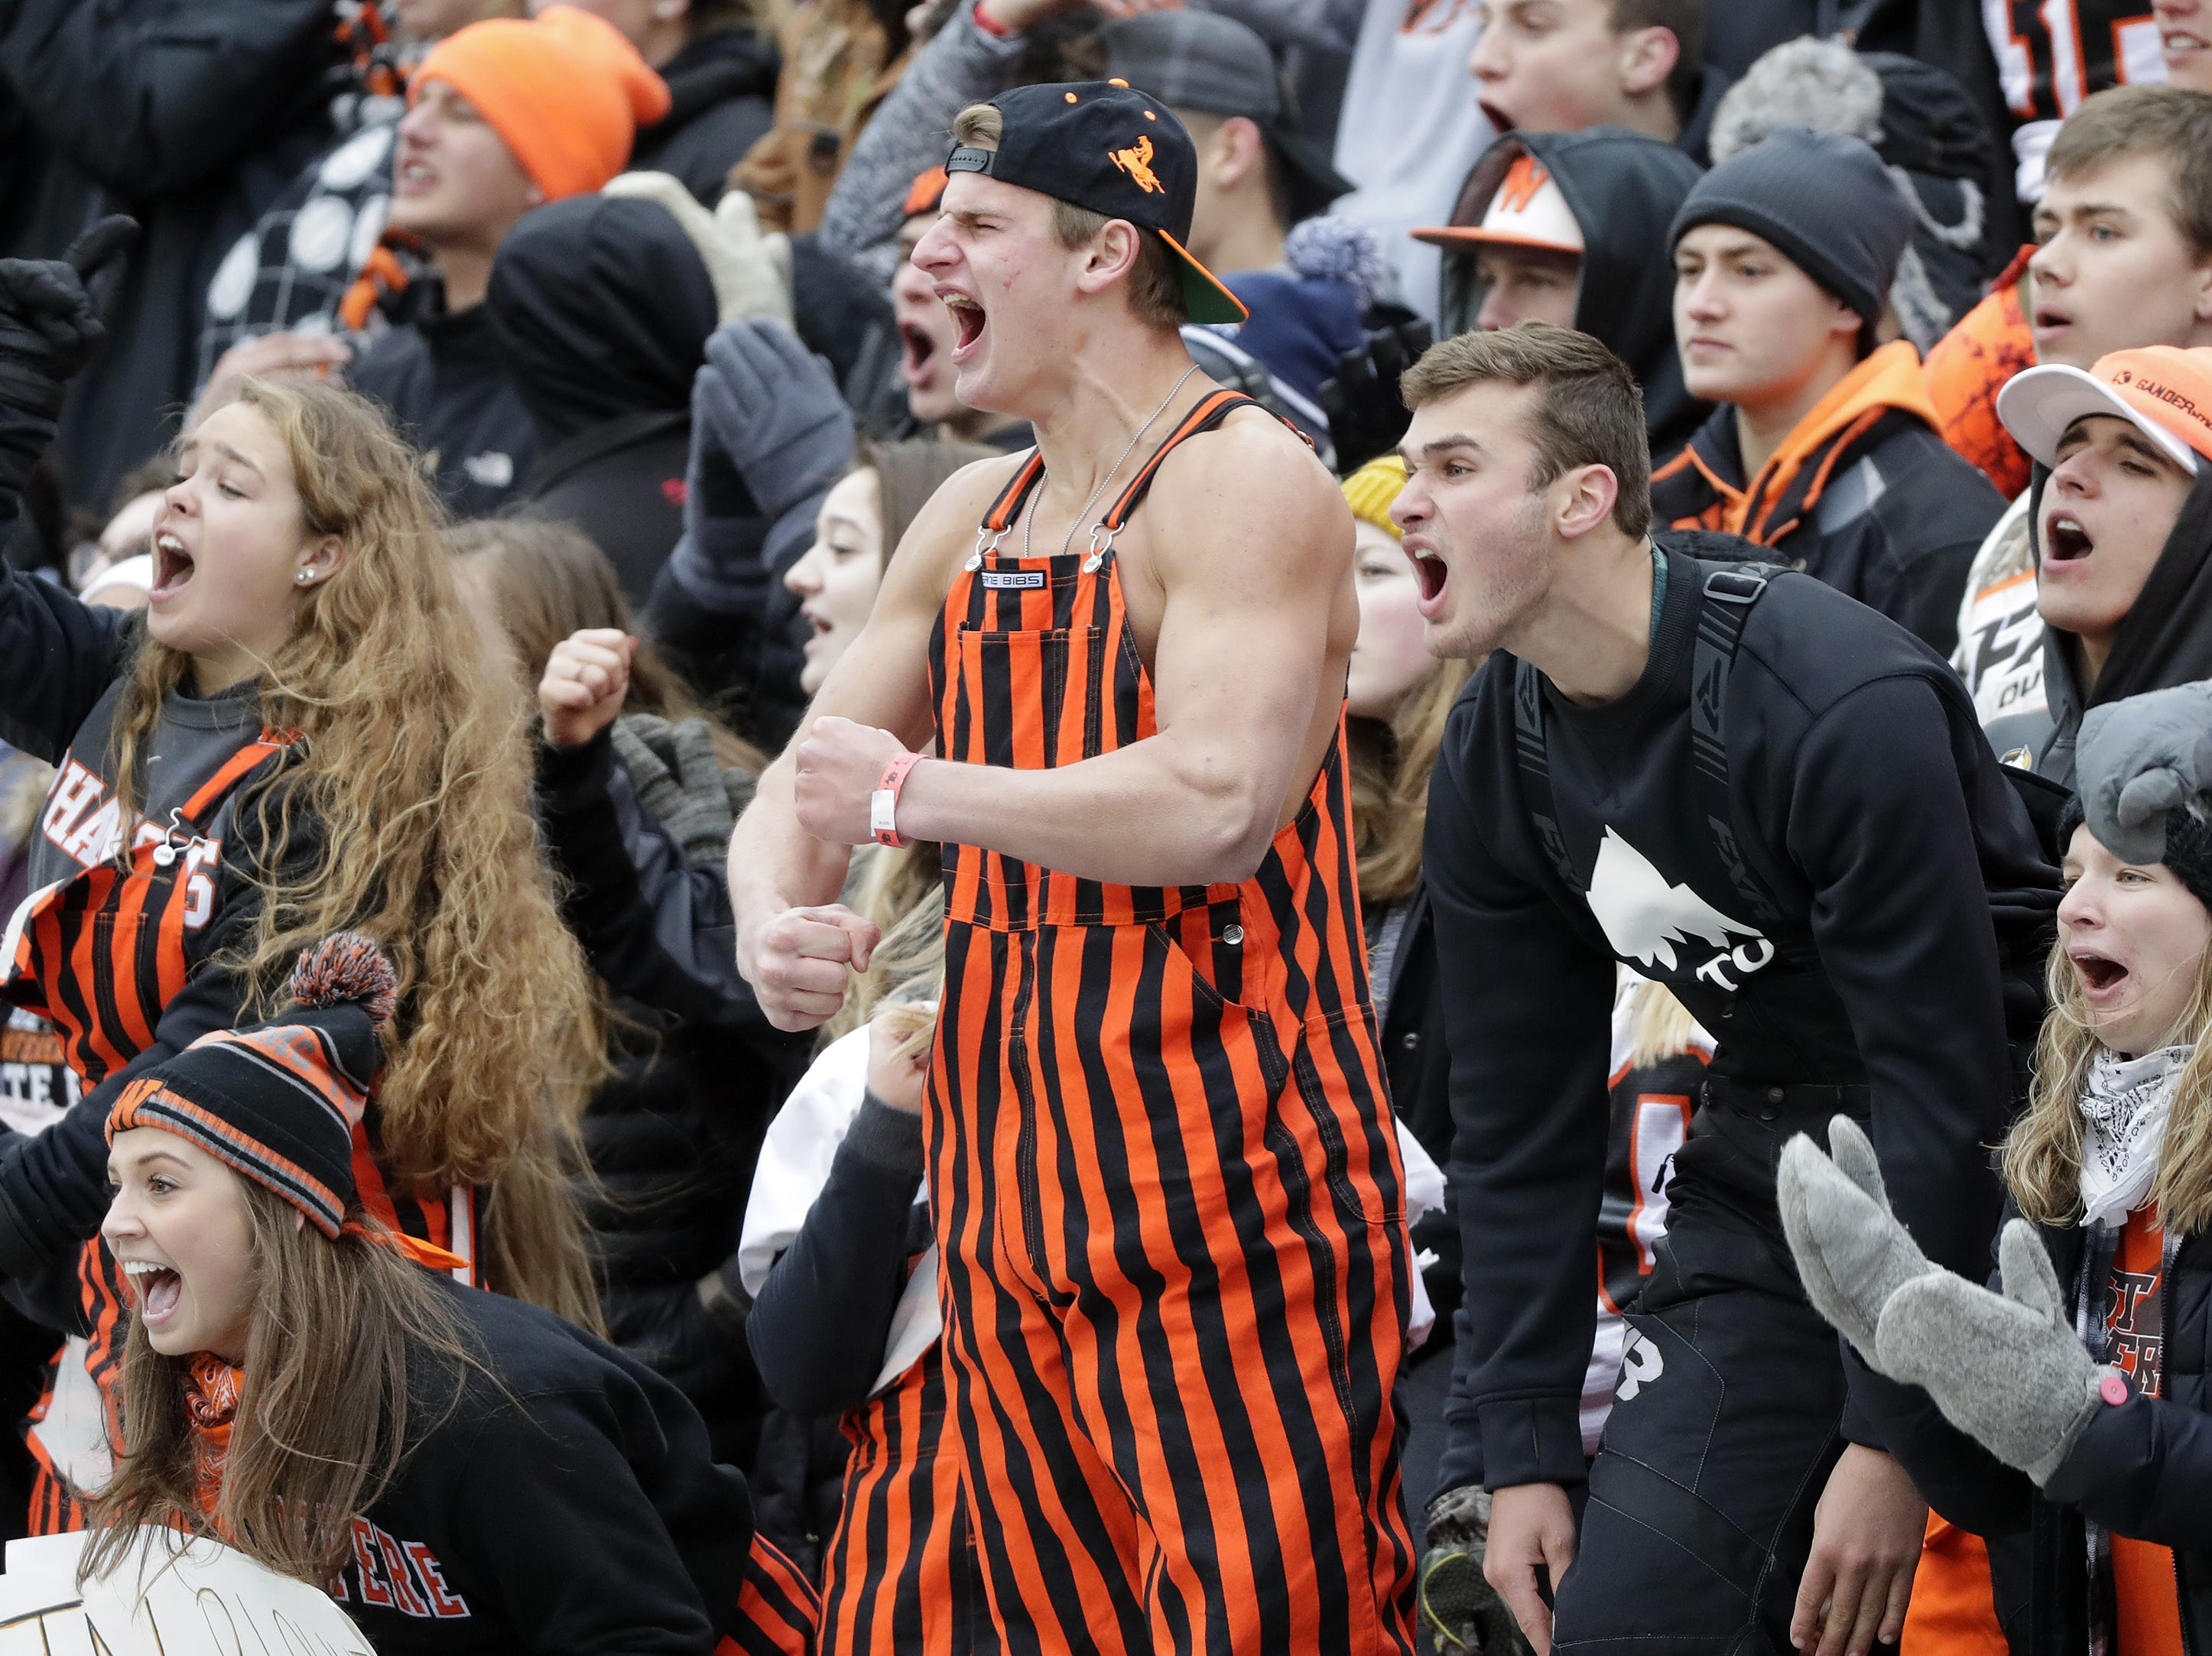 West De Pere students cheer during the WIAA Division 3 championship game at Camp Randall Stadium on Friday, November 16, 2018 in Madison, Wis.